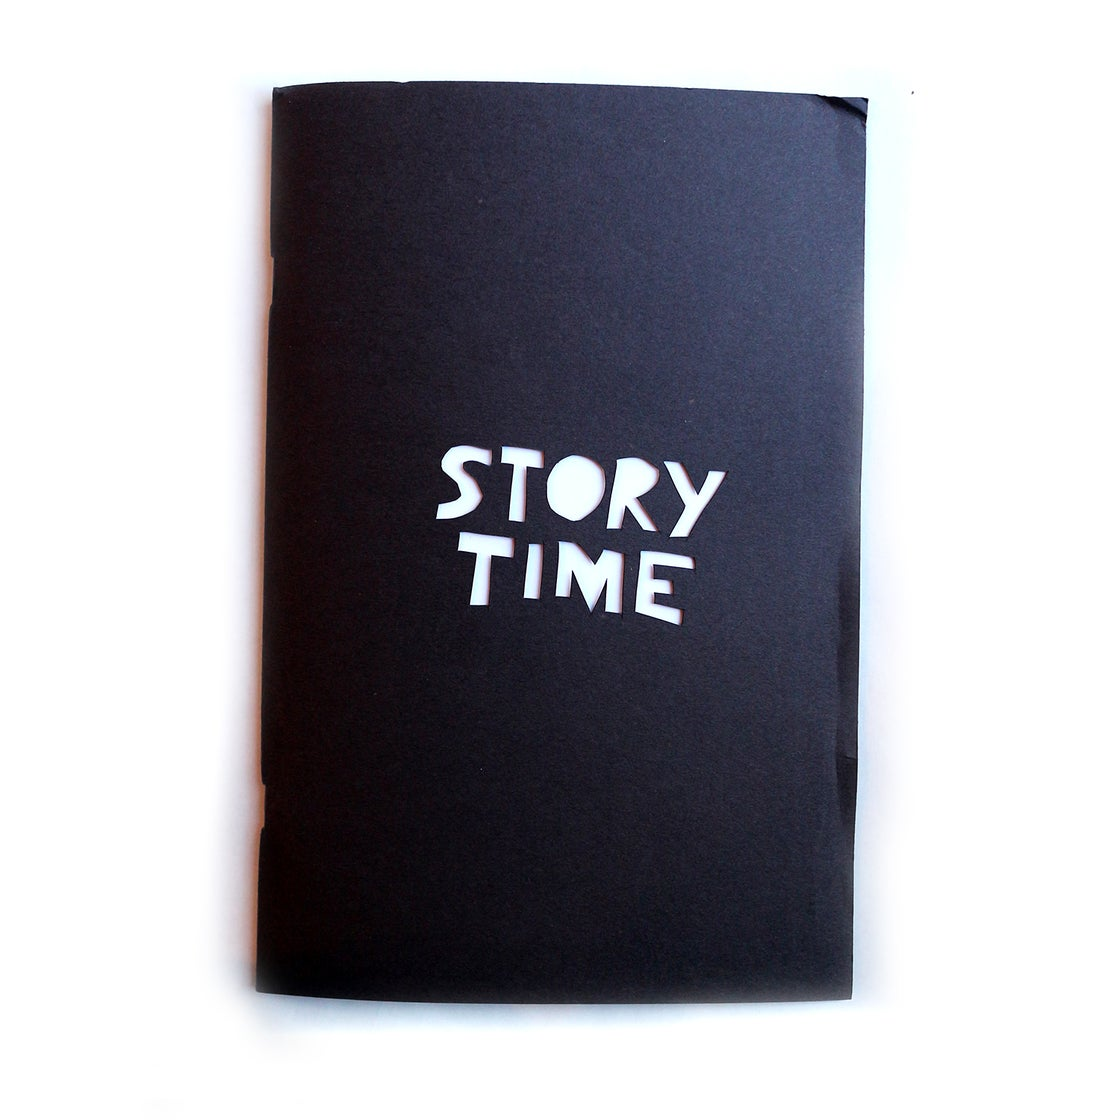 Image of STORY TIME - JACKSON BRINKLEY